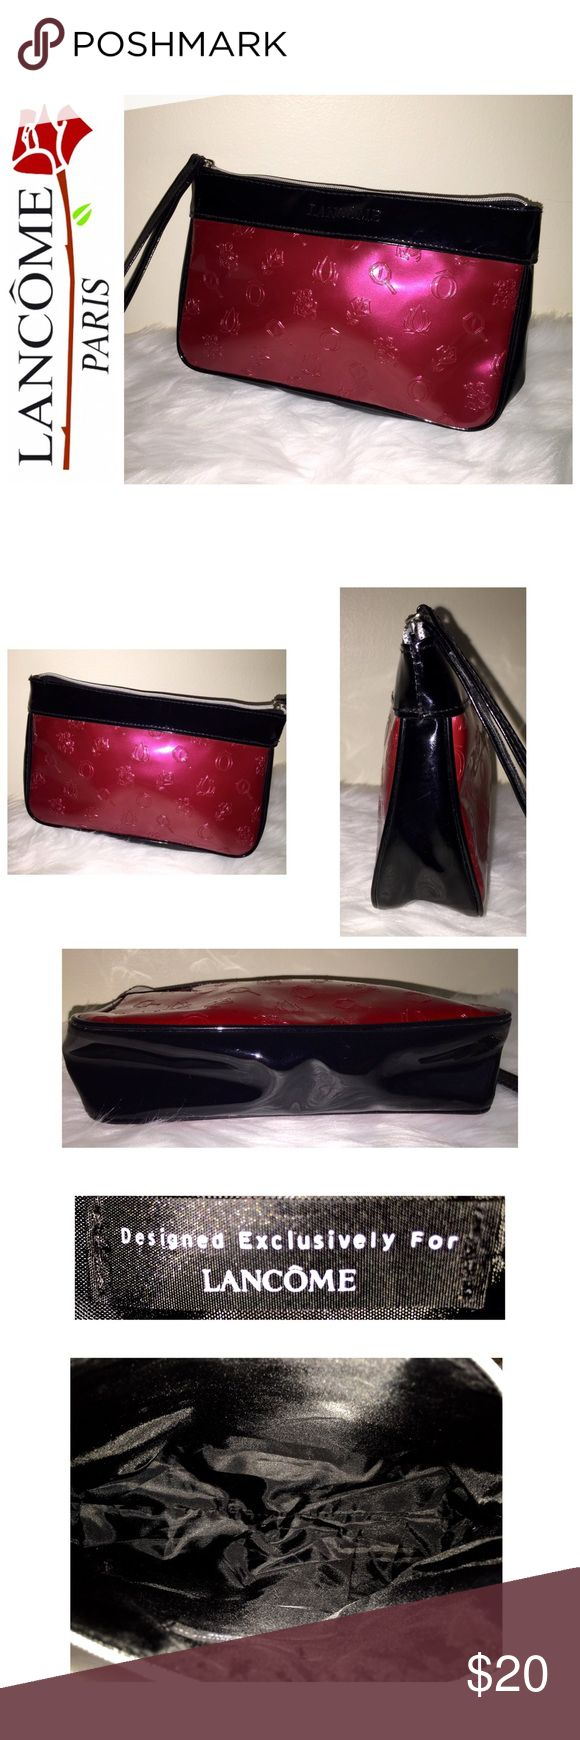 """Lancôme Designer Cosmetic Bag Lancôme Designer Cosmetic Bag, Beautiful Two Toned Dark Pink and Black Vinyl Material with Black Nylon Interior, Zip Top Closure with 6"""" Zip Handle, Approx. Size is 8 1/2""""x 5 1/2""""x 2 1/2"""", NWOT! Lancome Bags Cosmetic Bags & Cases"""